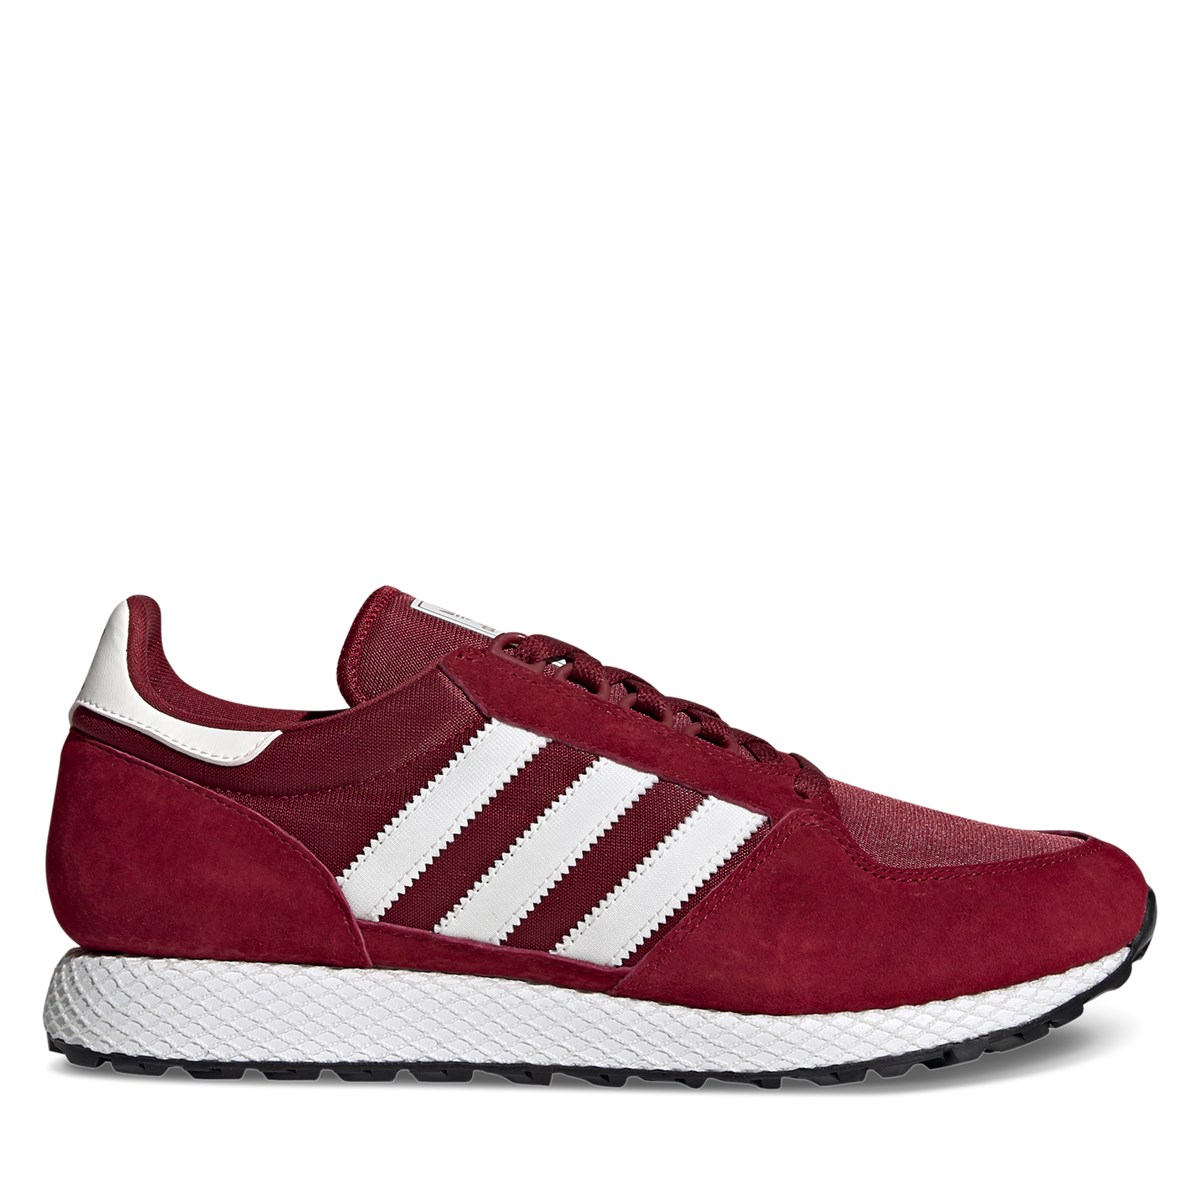 Men's Forest Grove Sneakers in Burgundy